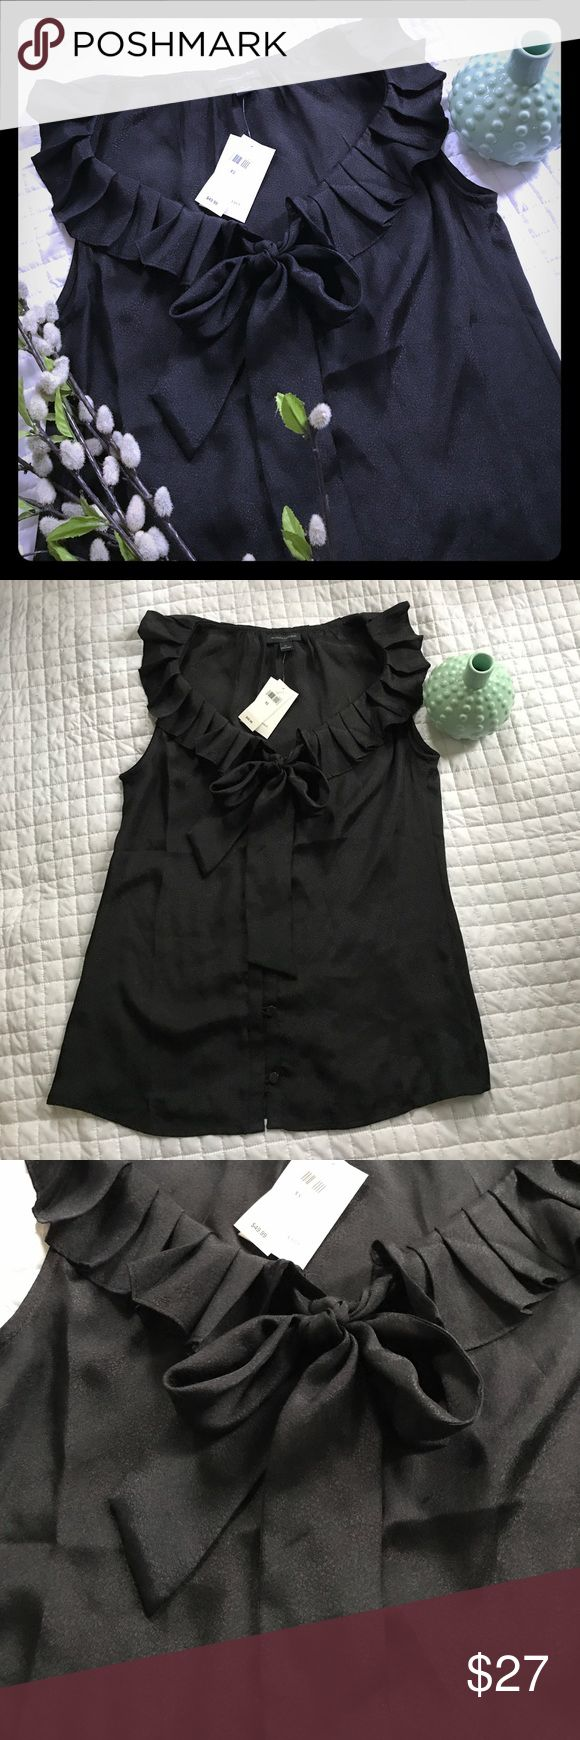 NWT Banana Republic Ruffle Bow Tank Top Brand new with tags, no defects! Soft silky feel, unique details! All of my items come from a clean, smoke-free home! Please look over the photos and let me know if you have any questions! Check my closet for more items and save when you bundle! Banana Republic Tops Tank Tops